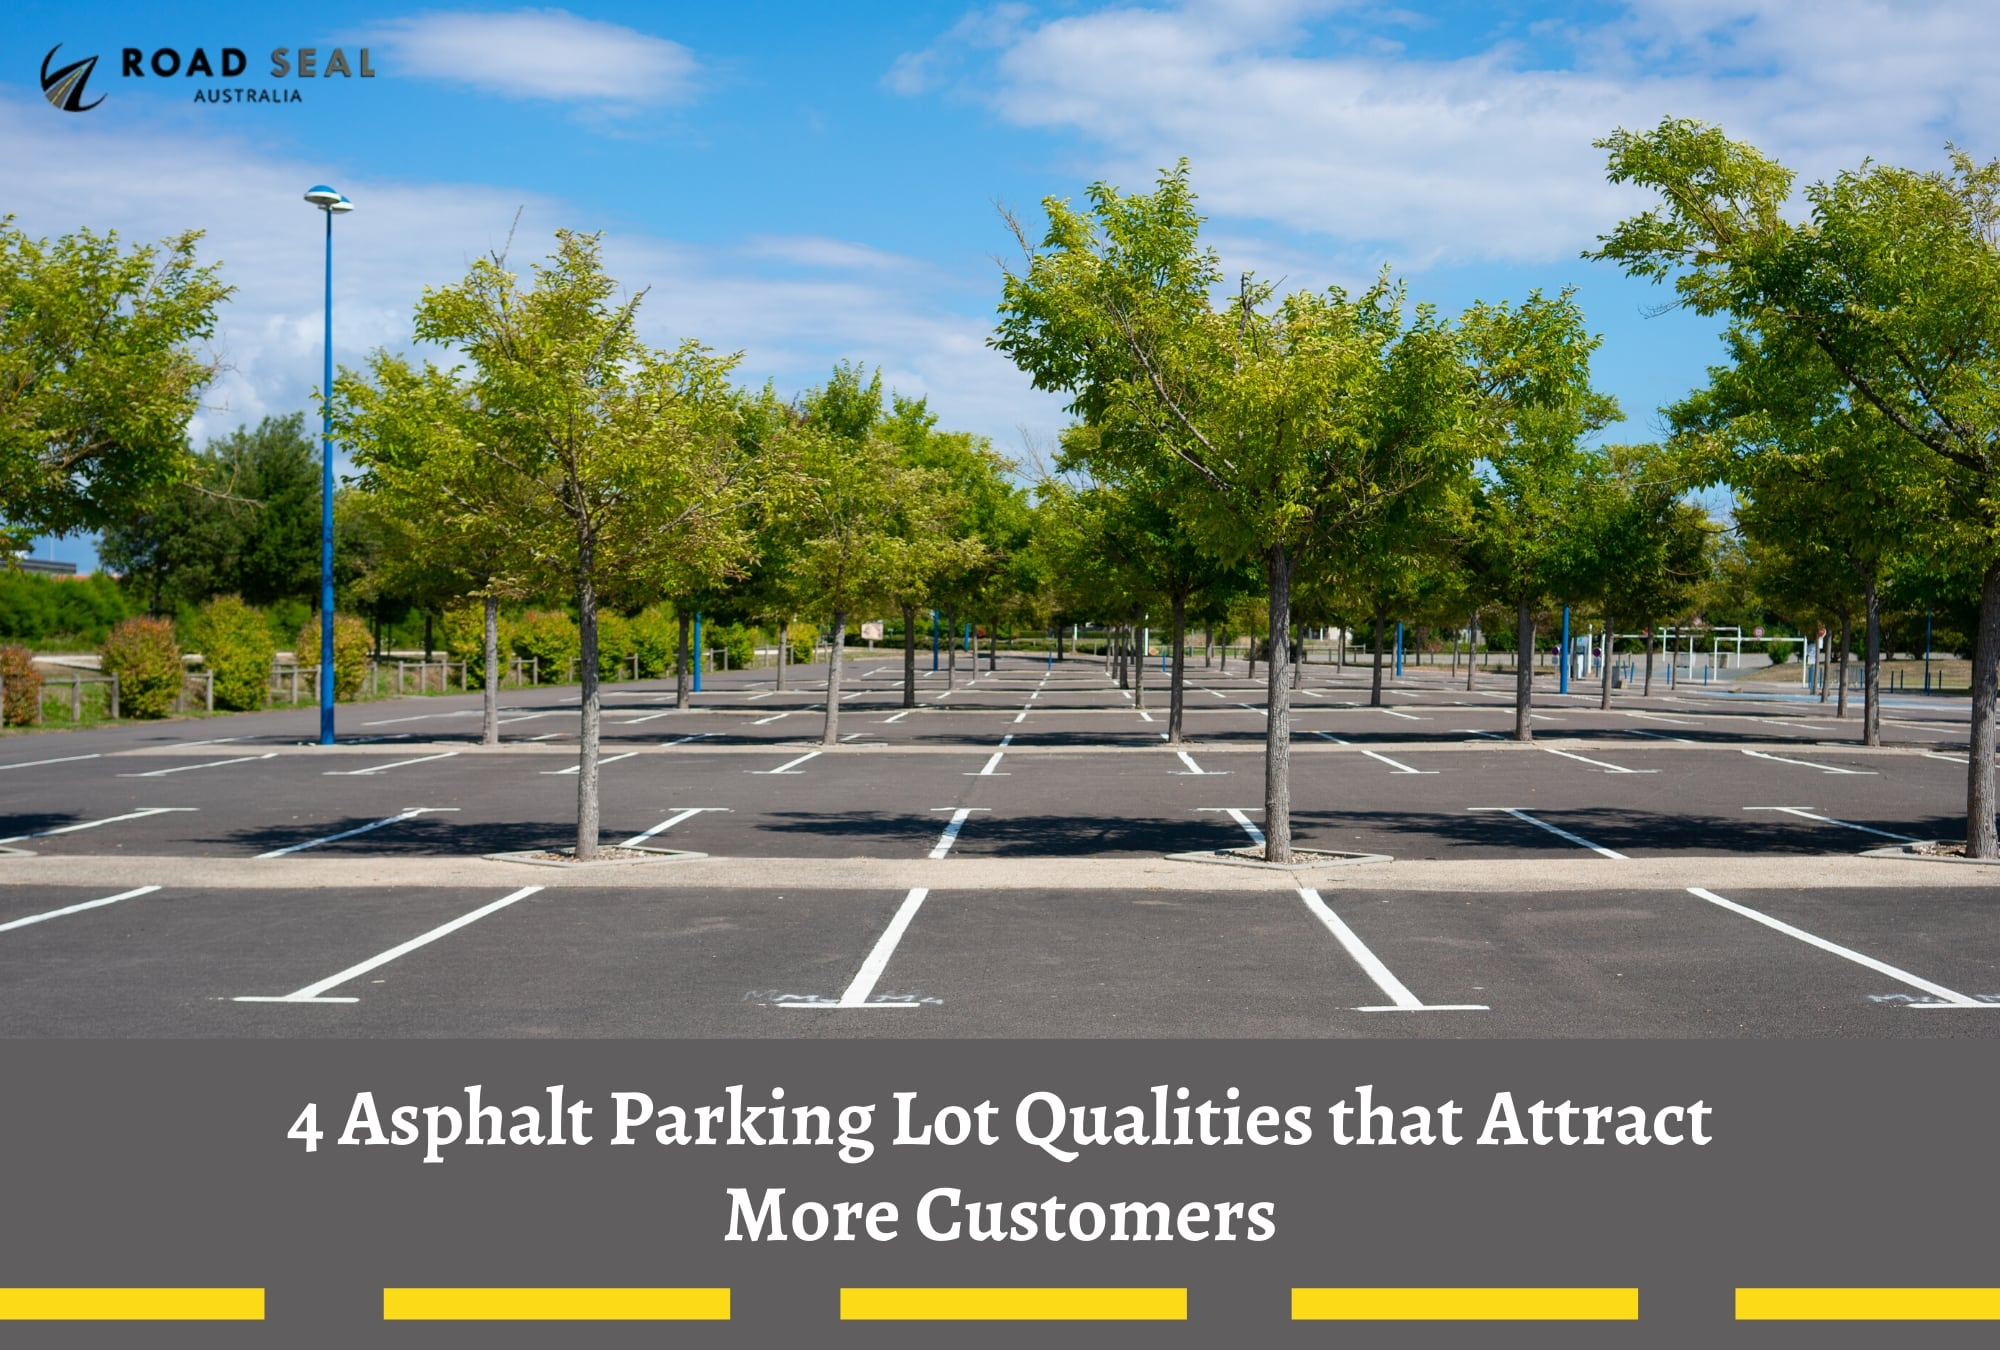 4 Asphalt Parking Lot Qualities that Attract More Customers